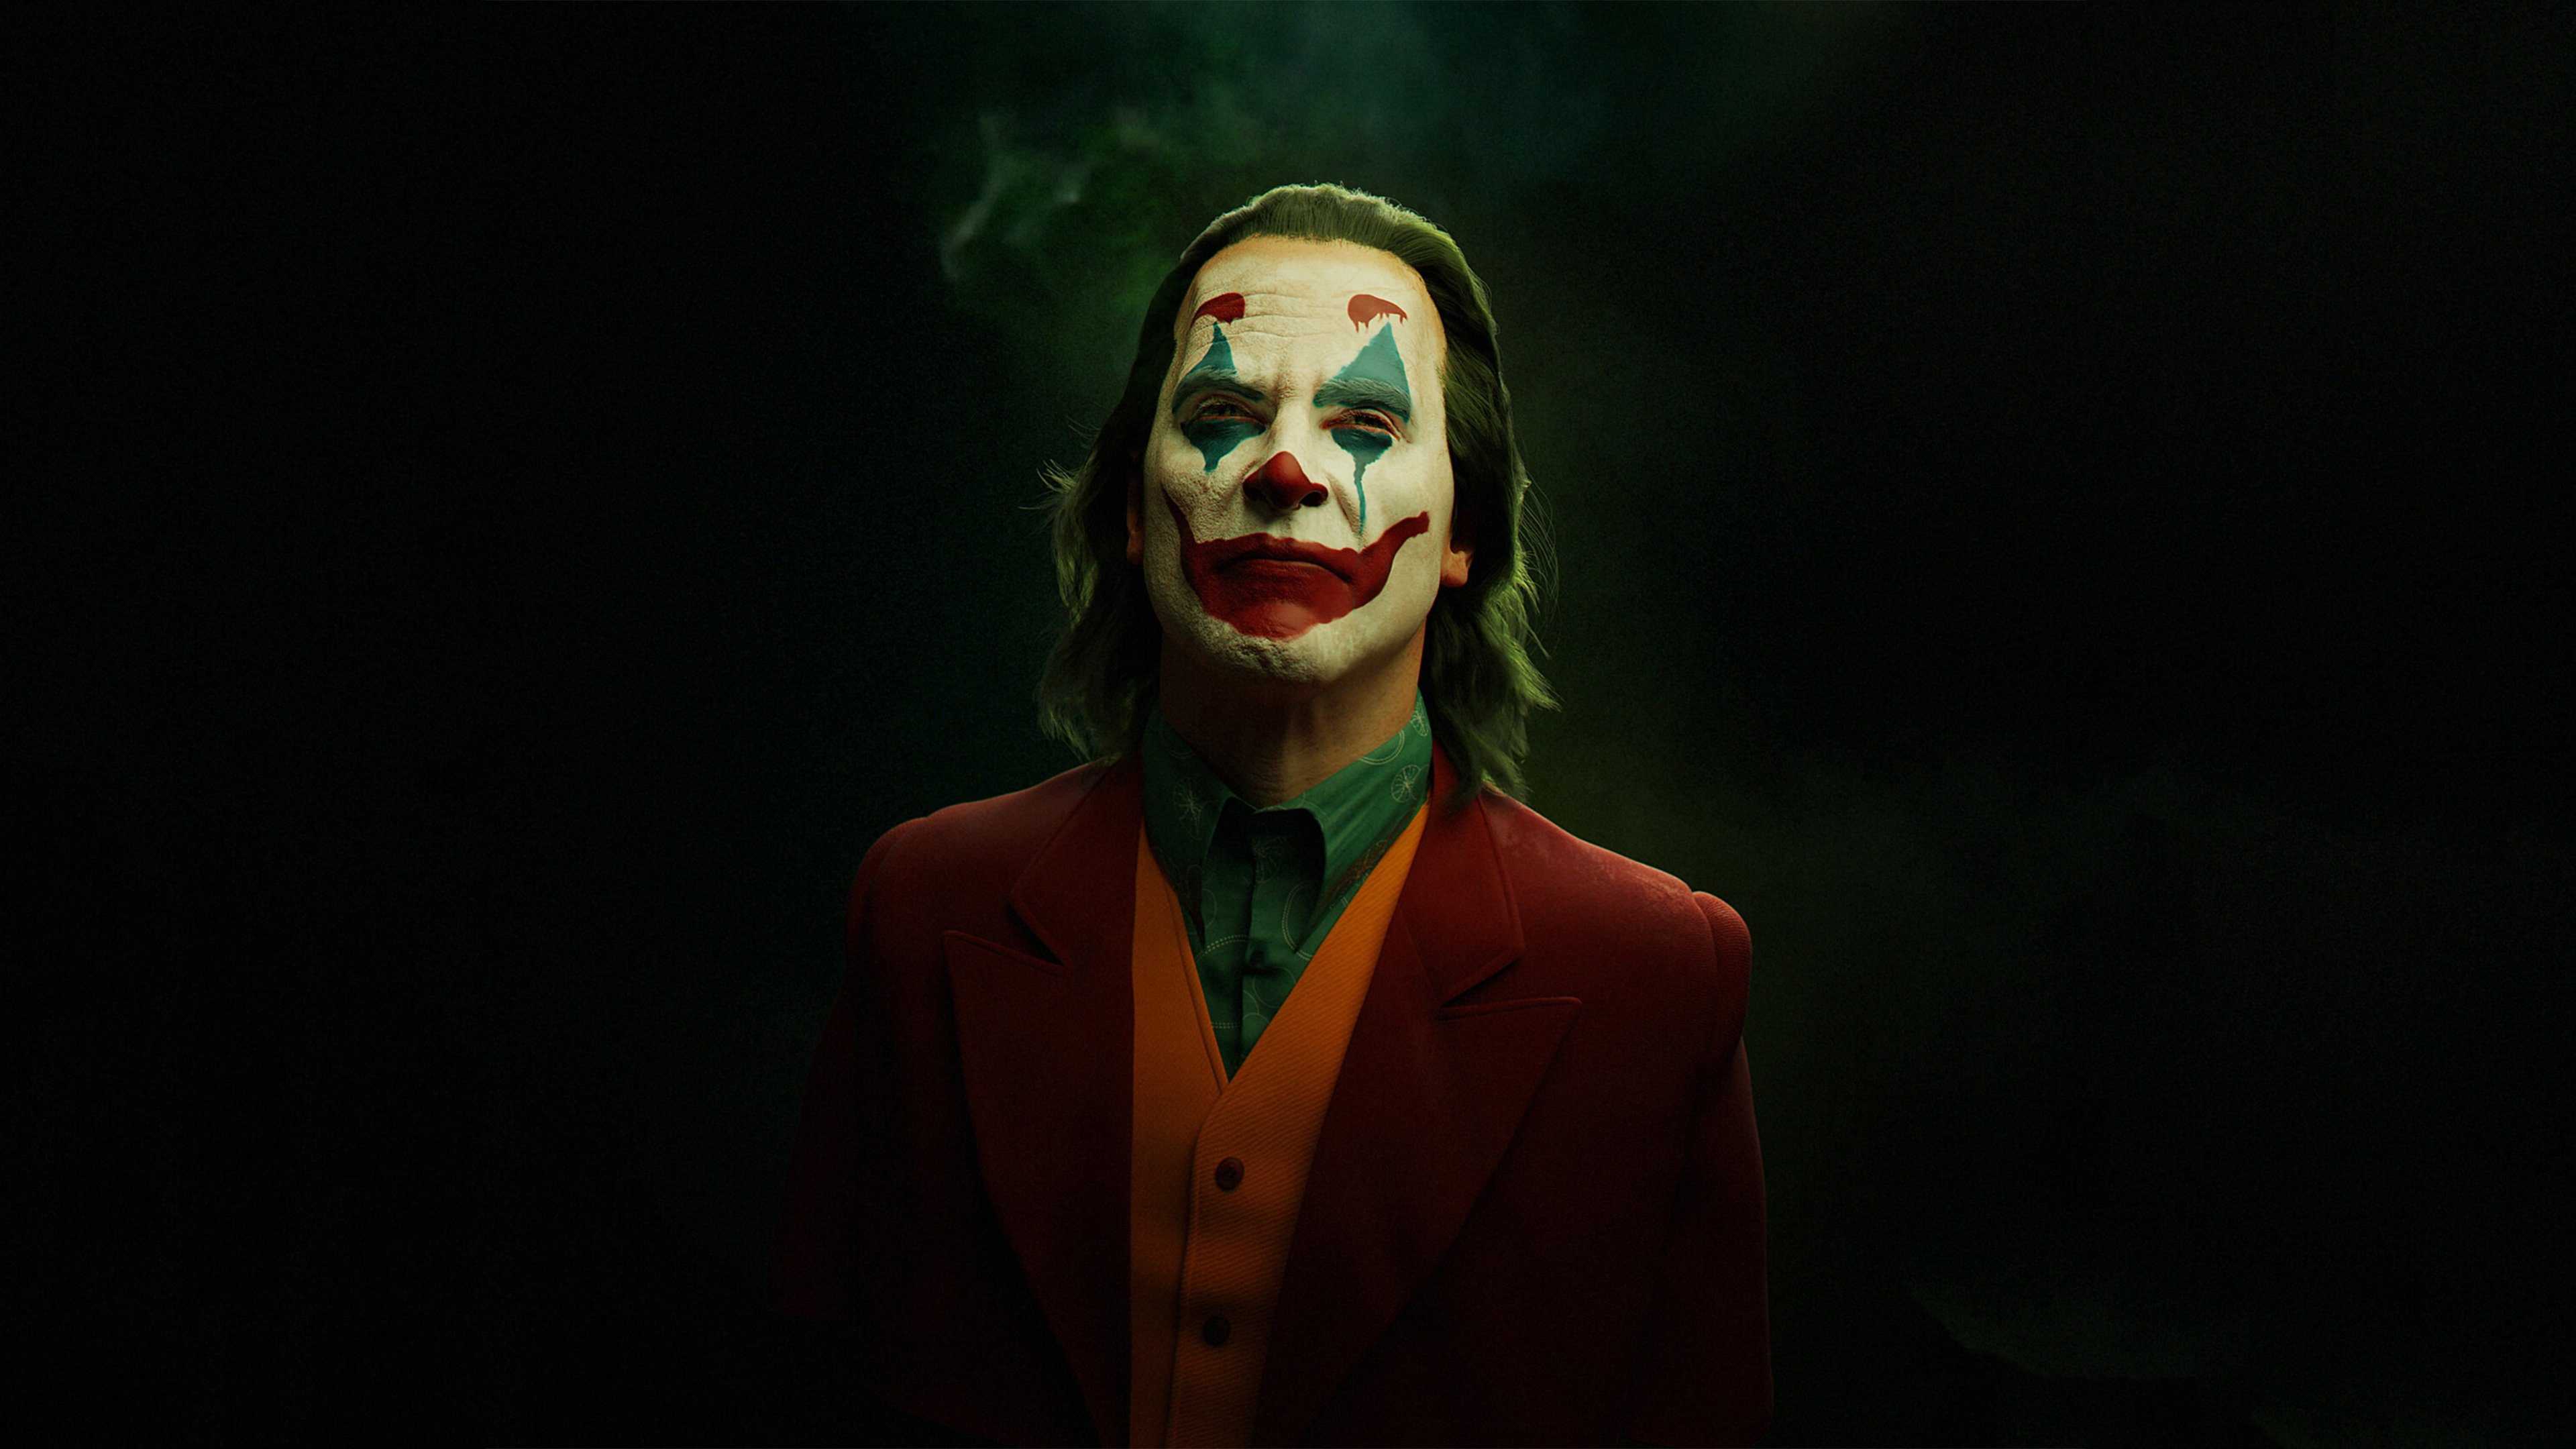 Joker Background Picture HD Wallpapers 3840x2160